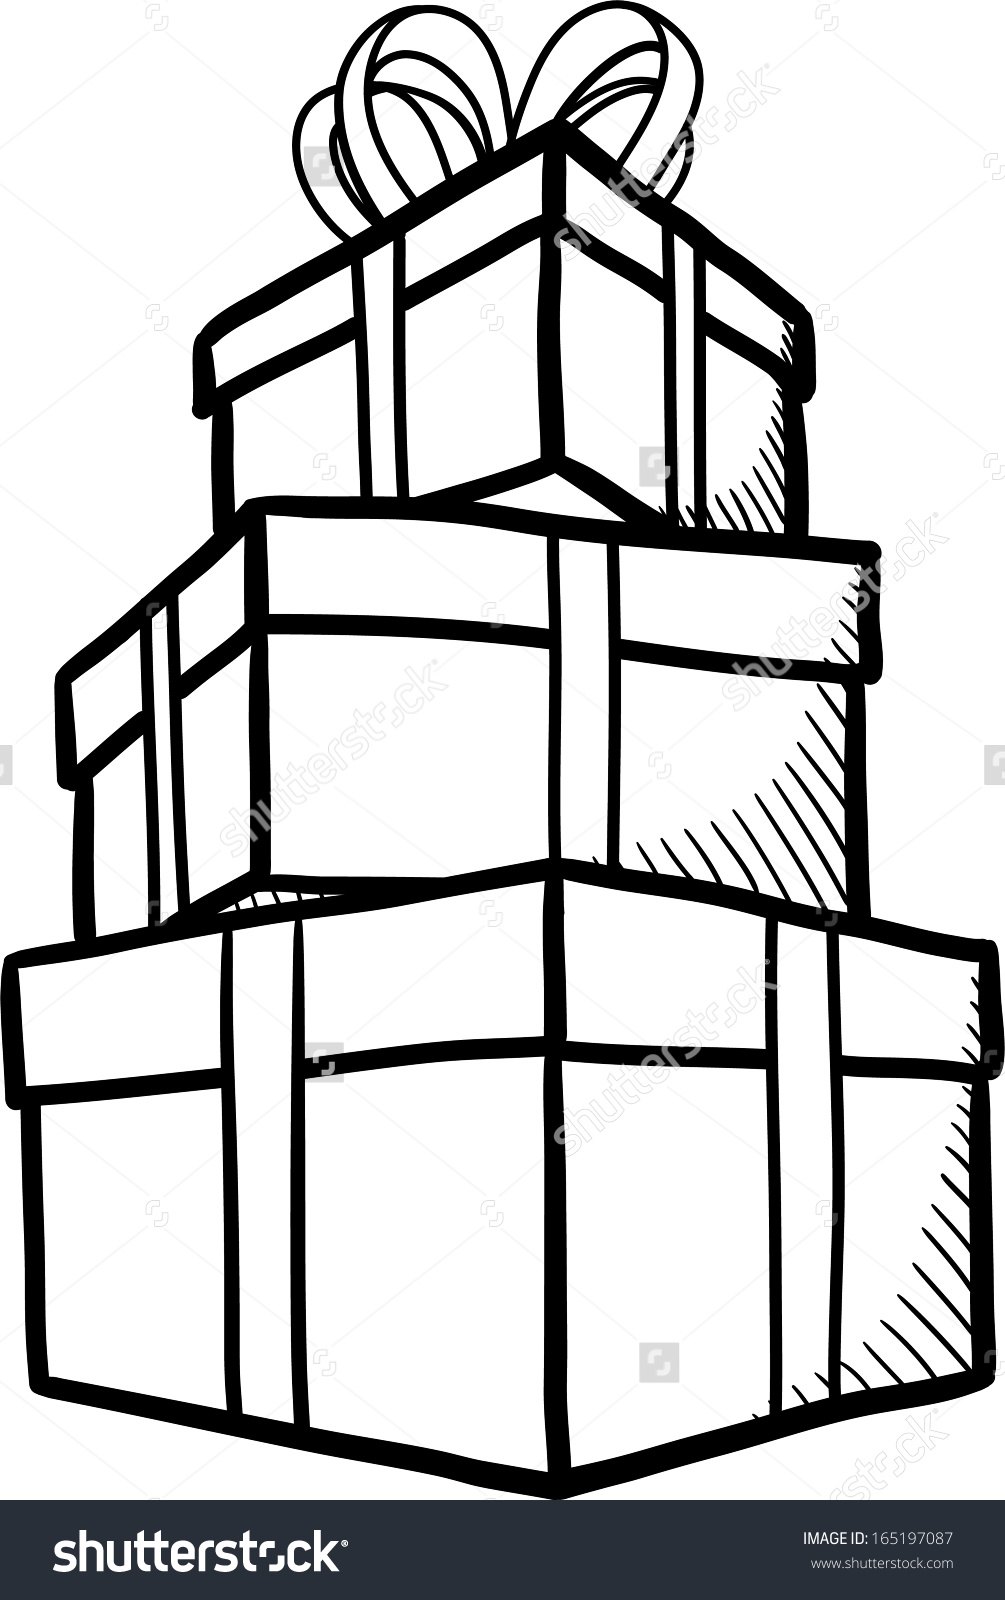 Outline of present clipart clipground